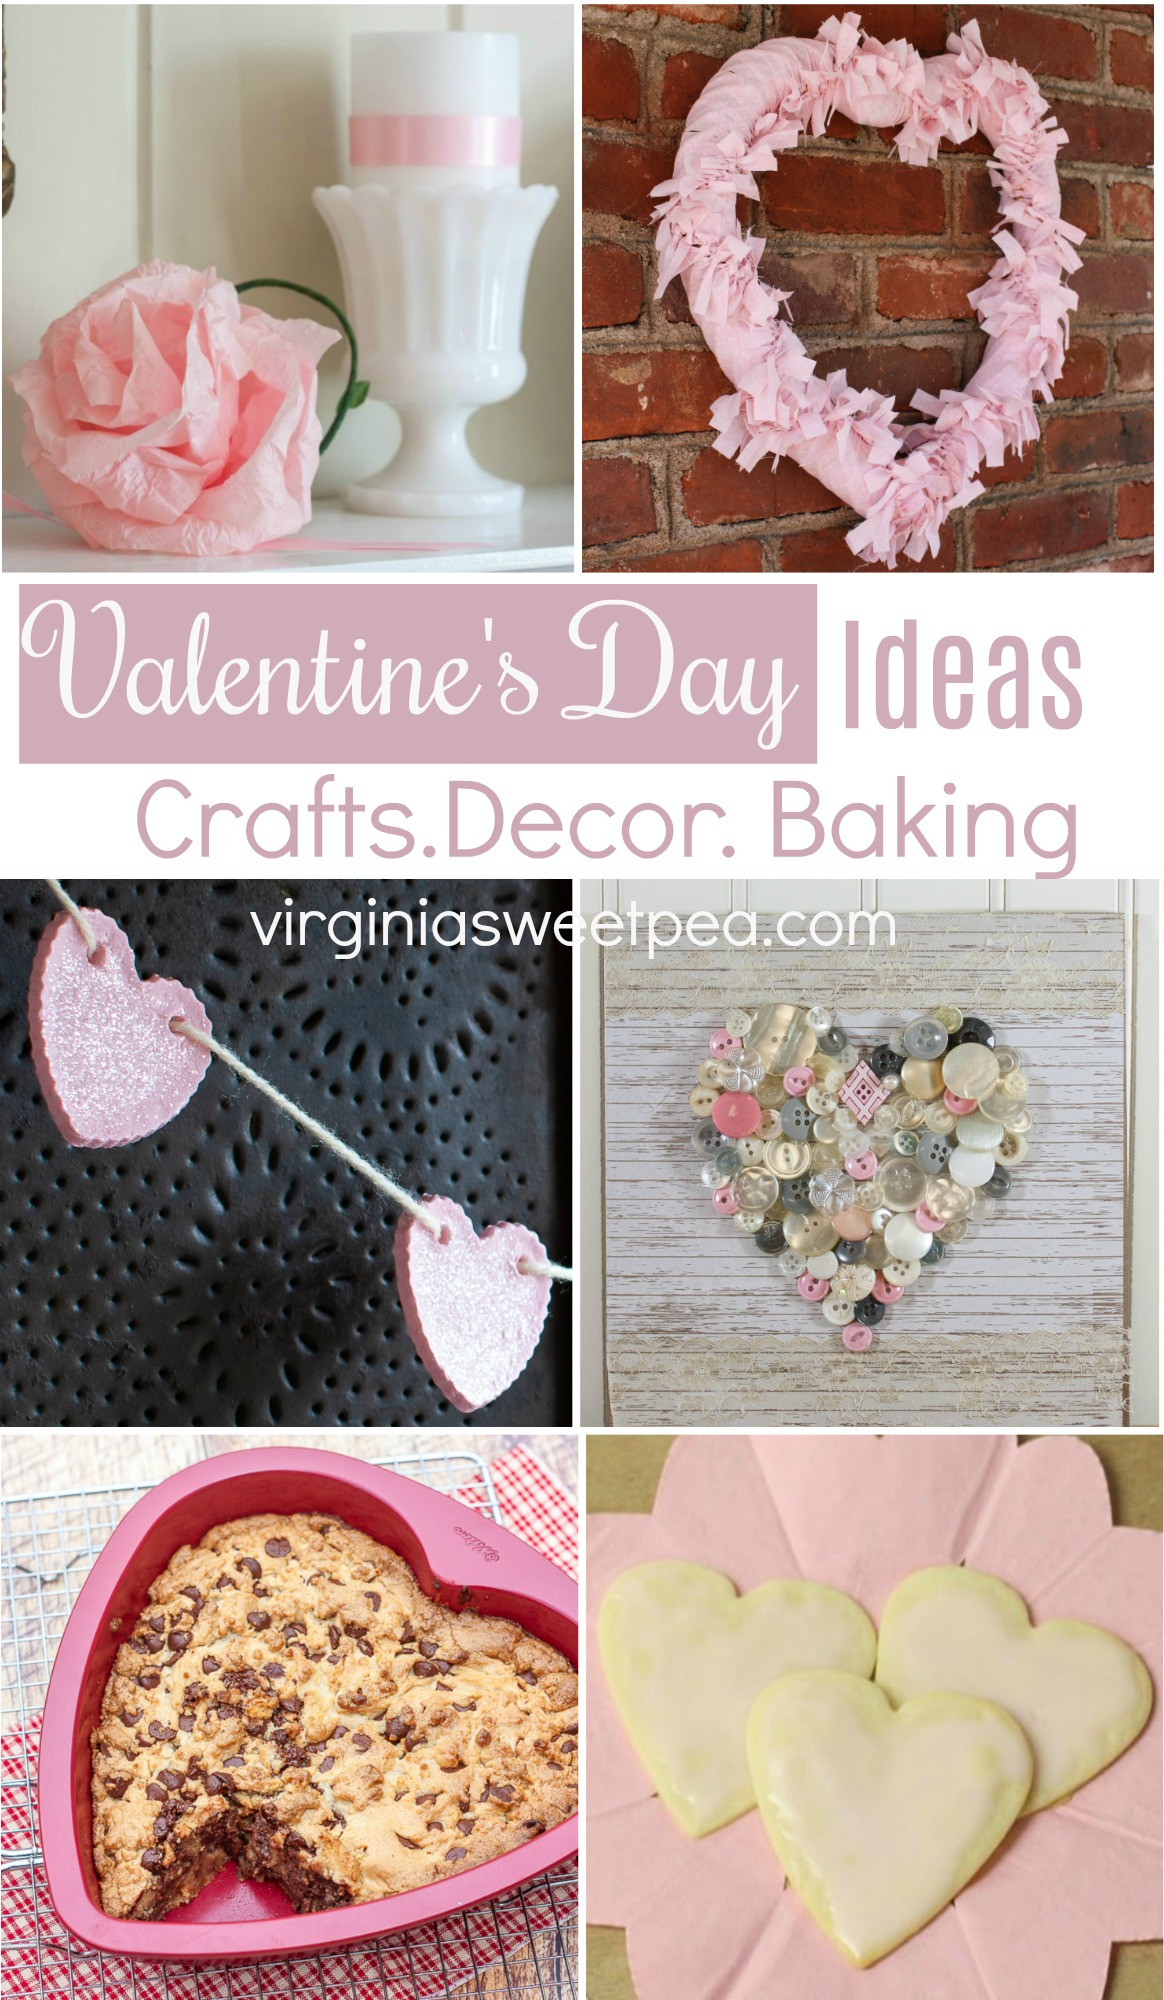 Valentine's Day Ideas for Crafts, Decor, and Baking - Get loads of ideas to make your Valentine's Day extra special. via @spaula